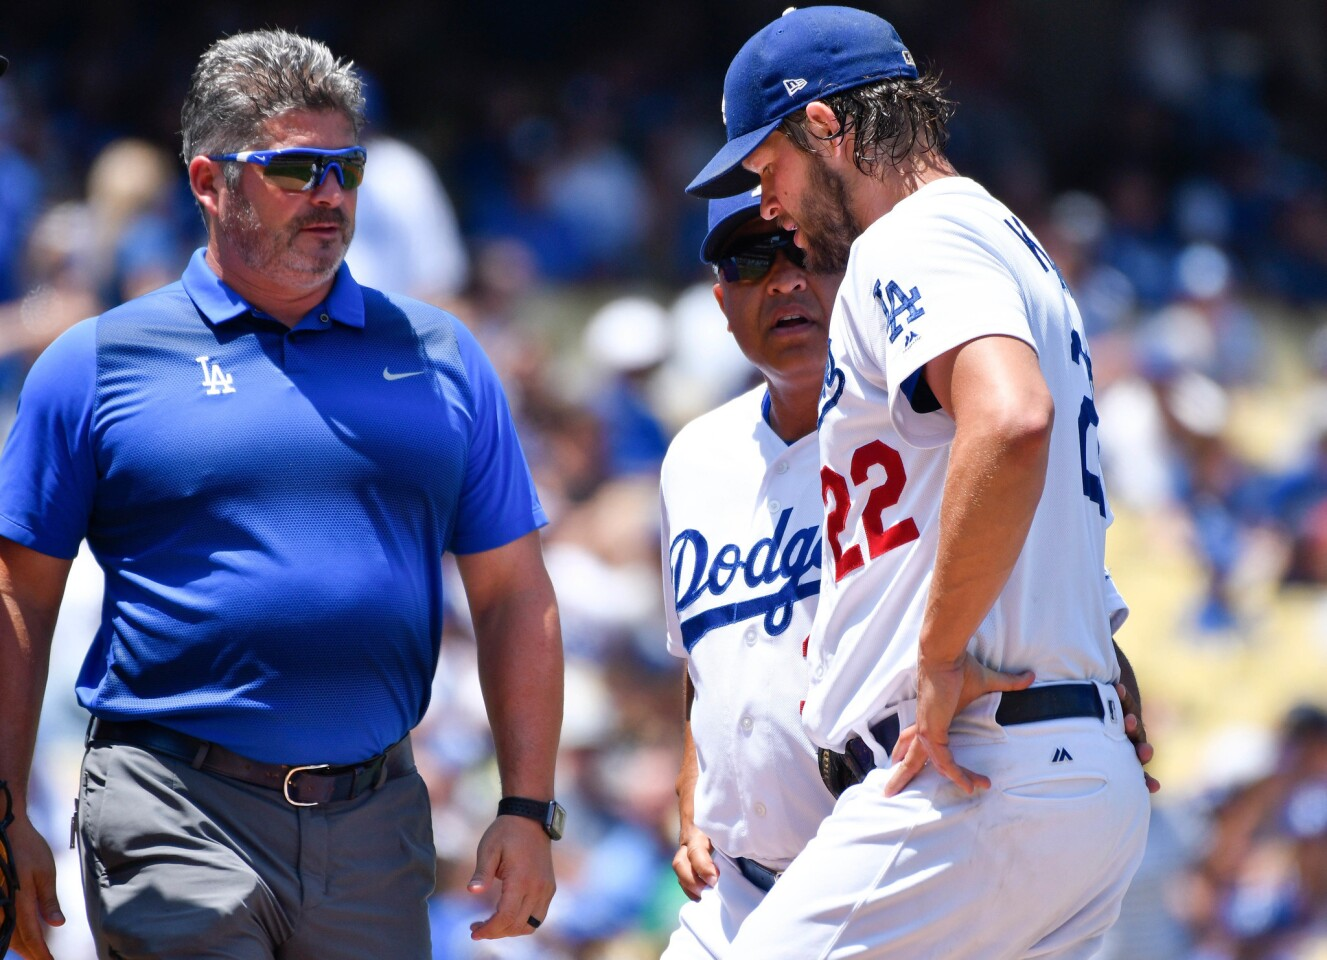 Jul 23, 2017; Los Angeles, CA, USA; Los Angeles Dodgers starting pitcher Clayton Kershaw (22) talks to manager Dave Roberts (center) and trainer Nate Lucero after injuring himself in the second inning against the Atlanta Braves at Dodger Stadium. After throwing a few warmup pitches Kershaw stayed in the game but was pulled in the next inning. Mandatory Credit: Robert Hanashiro-USA TODAY Sports ** Usable by SD ONLY **